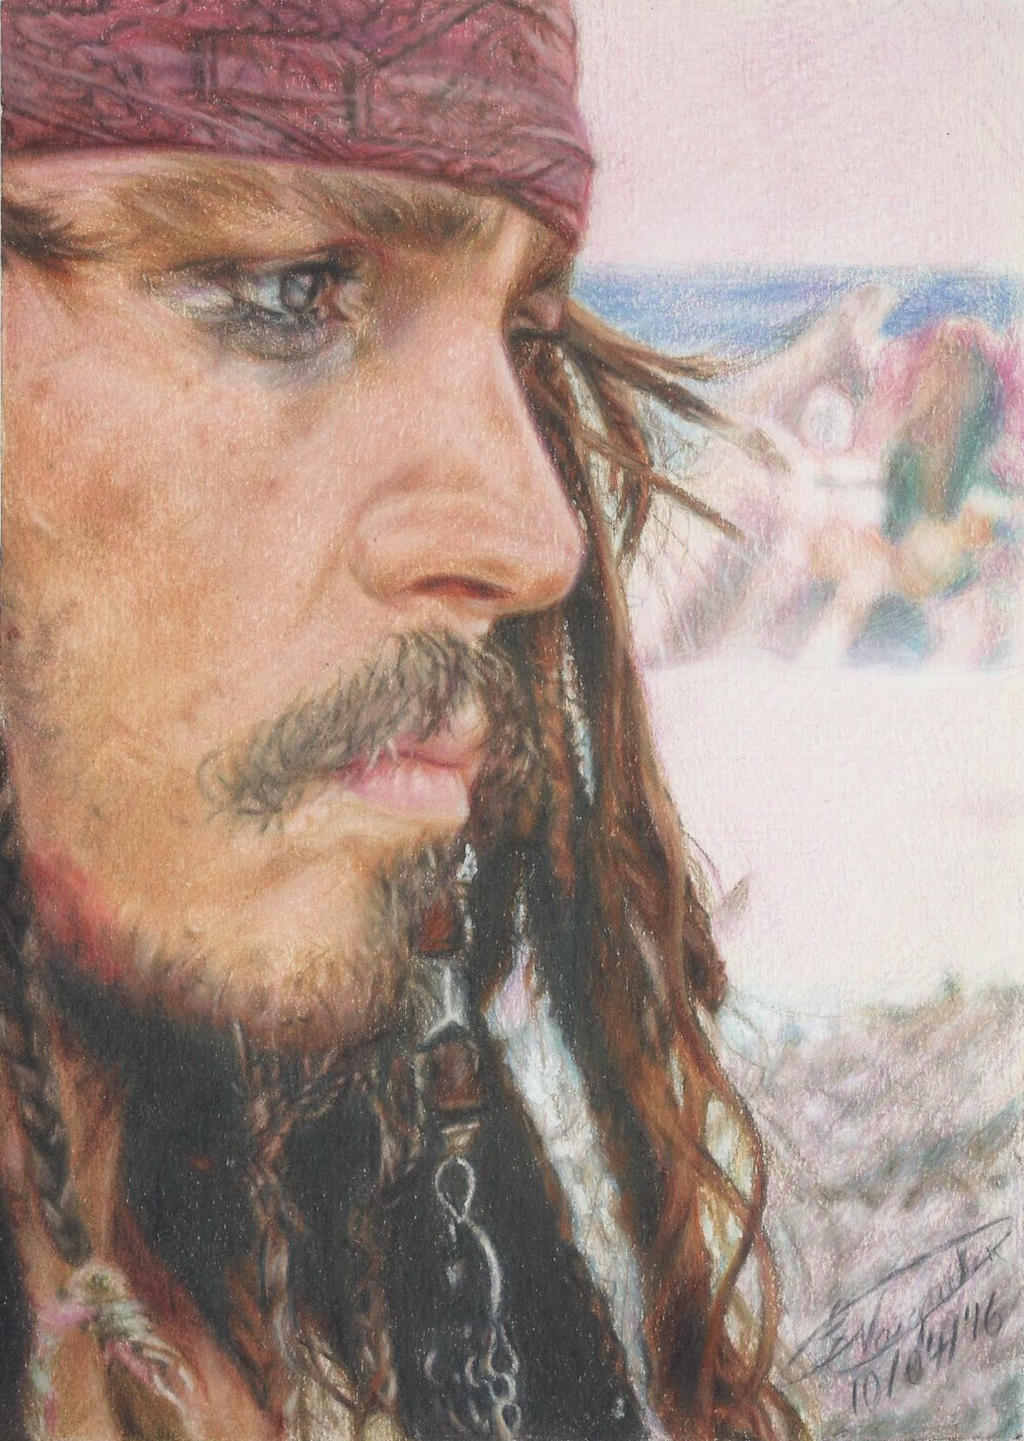 Captain Jack Sparrow (Drawing) by Tokiiolicious